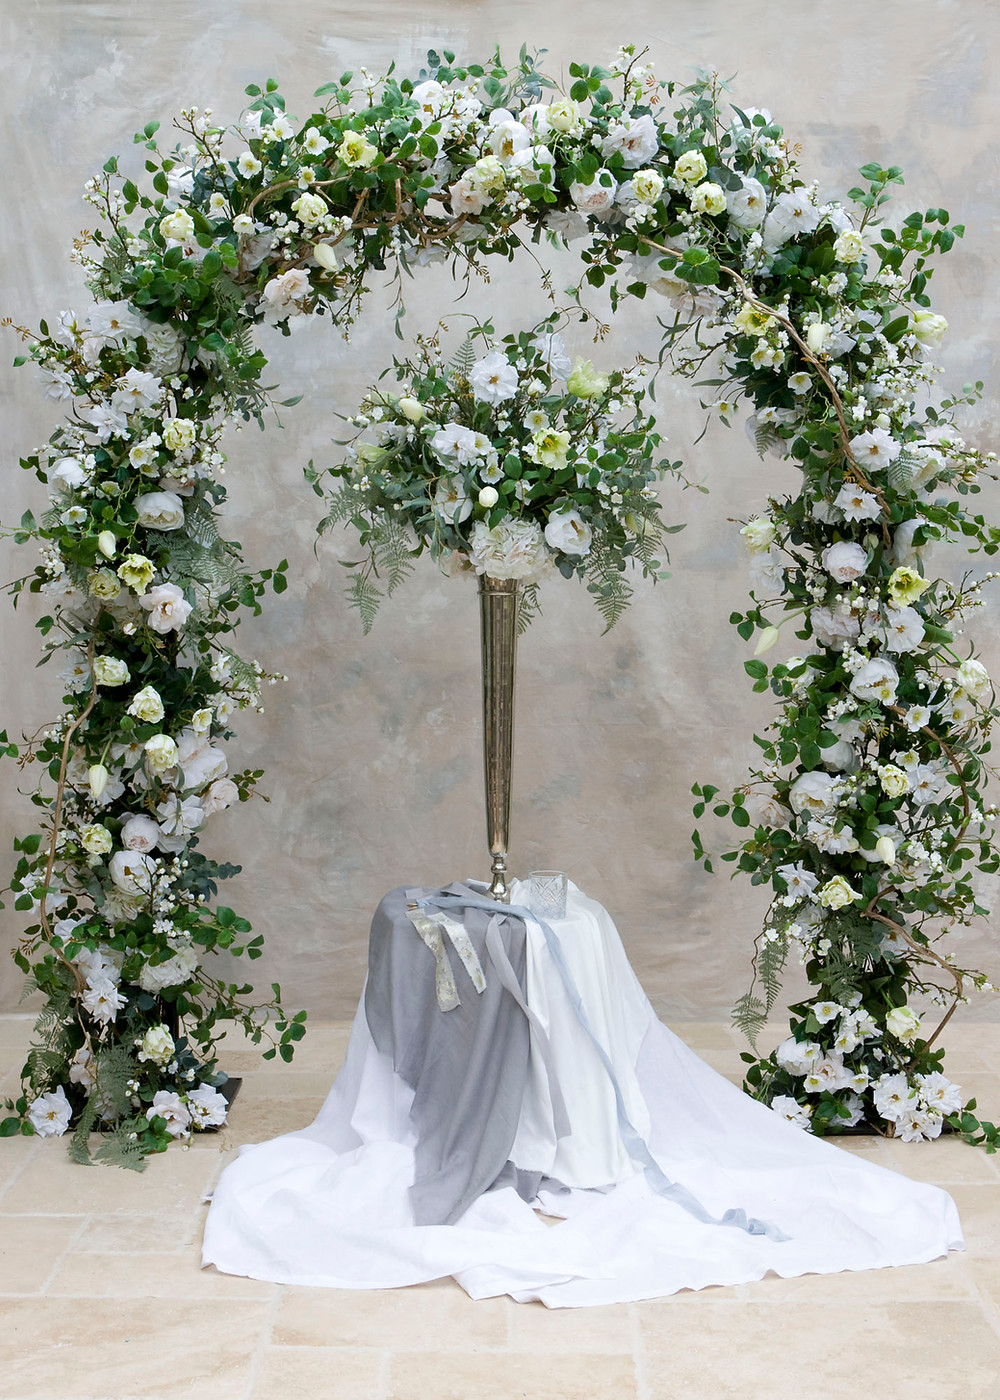 Faux floral spring arch and table centrepiece for hire, Essex